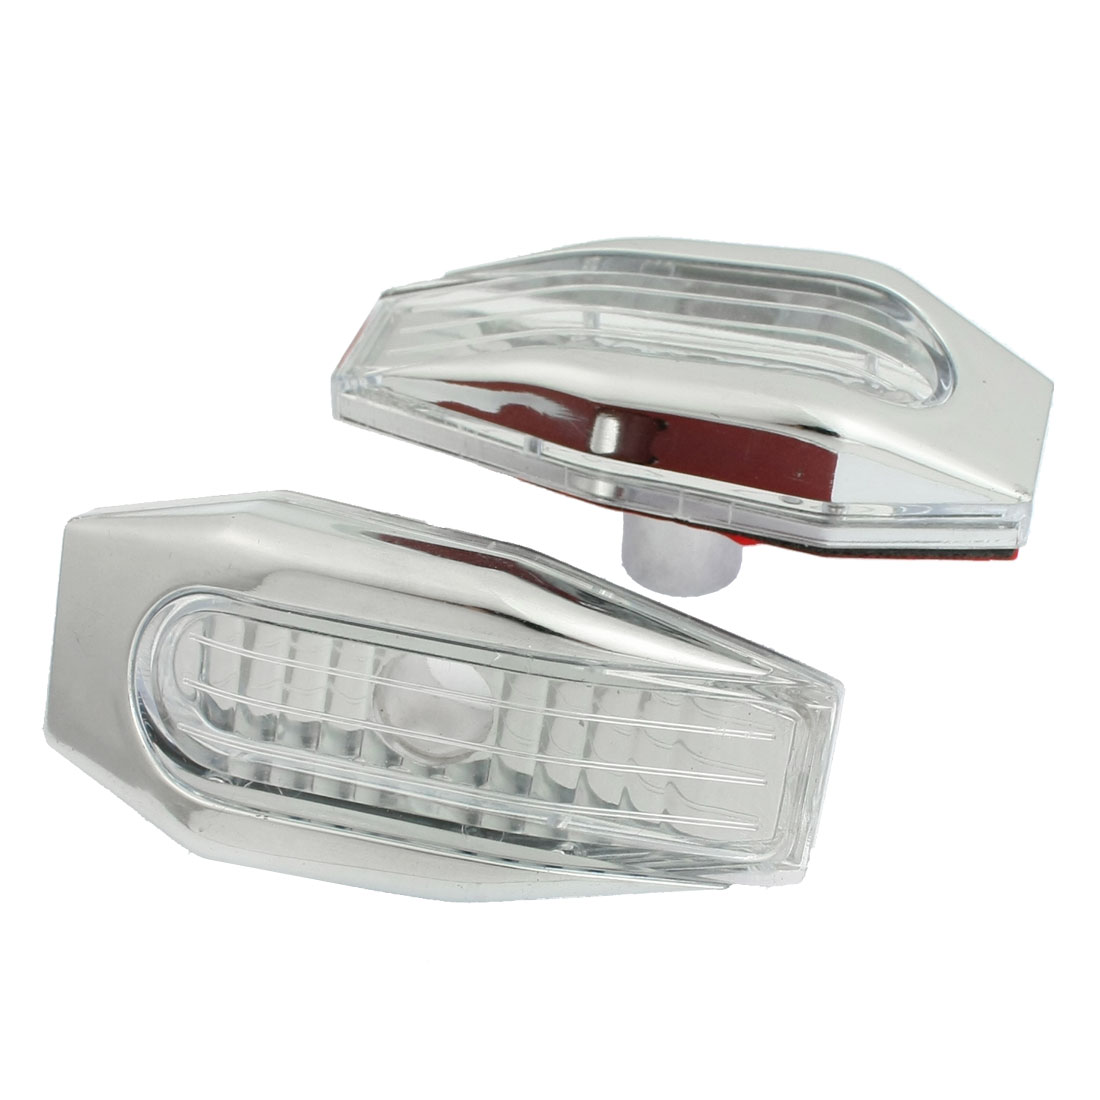 2 Pcs Silver Tone Clear Plastic Car Auto Side Light Lamp Cover